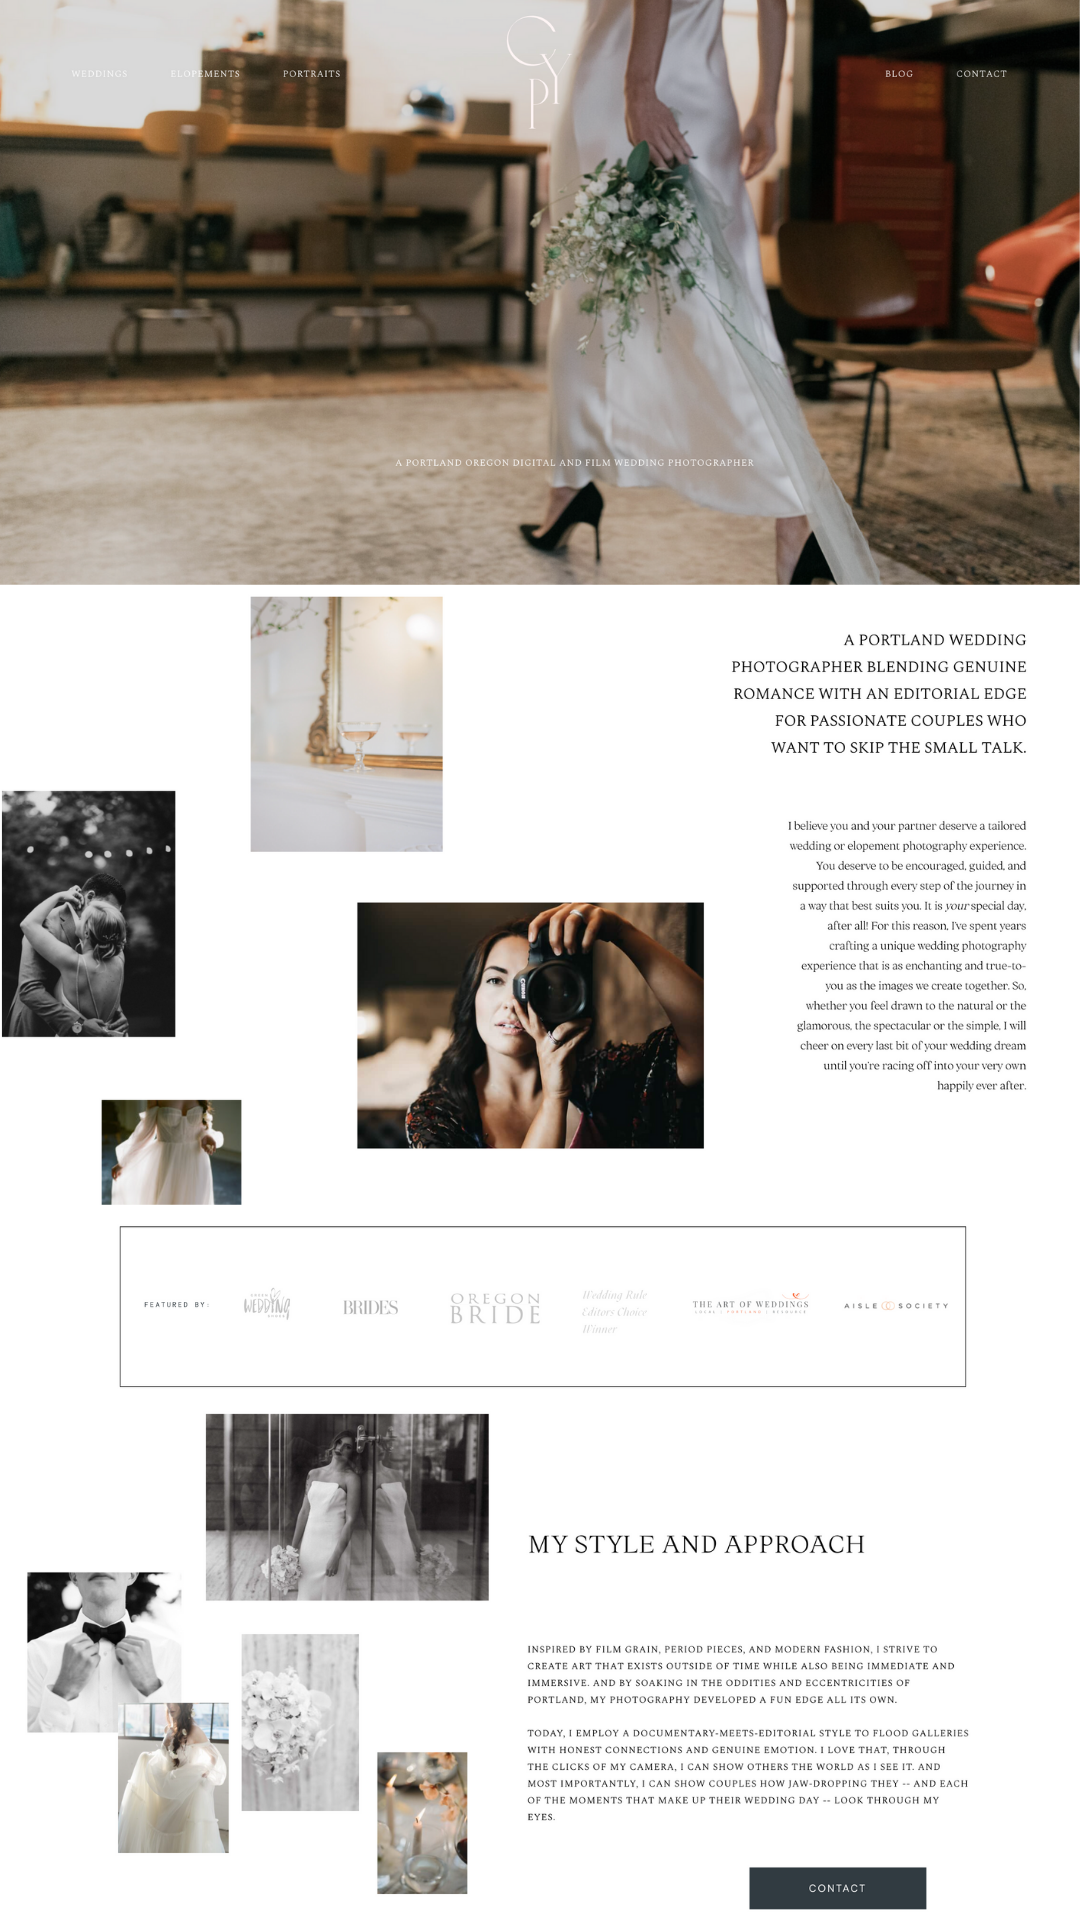 Casi Yost Photography copywriting for photographers client of The Write Lens